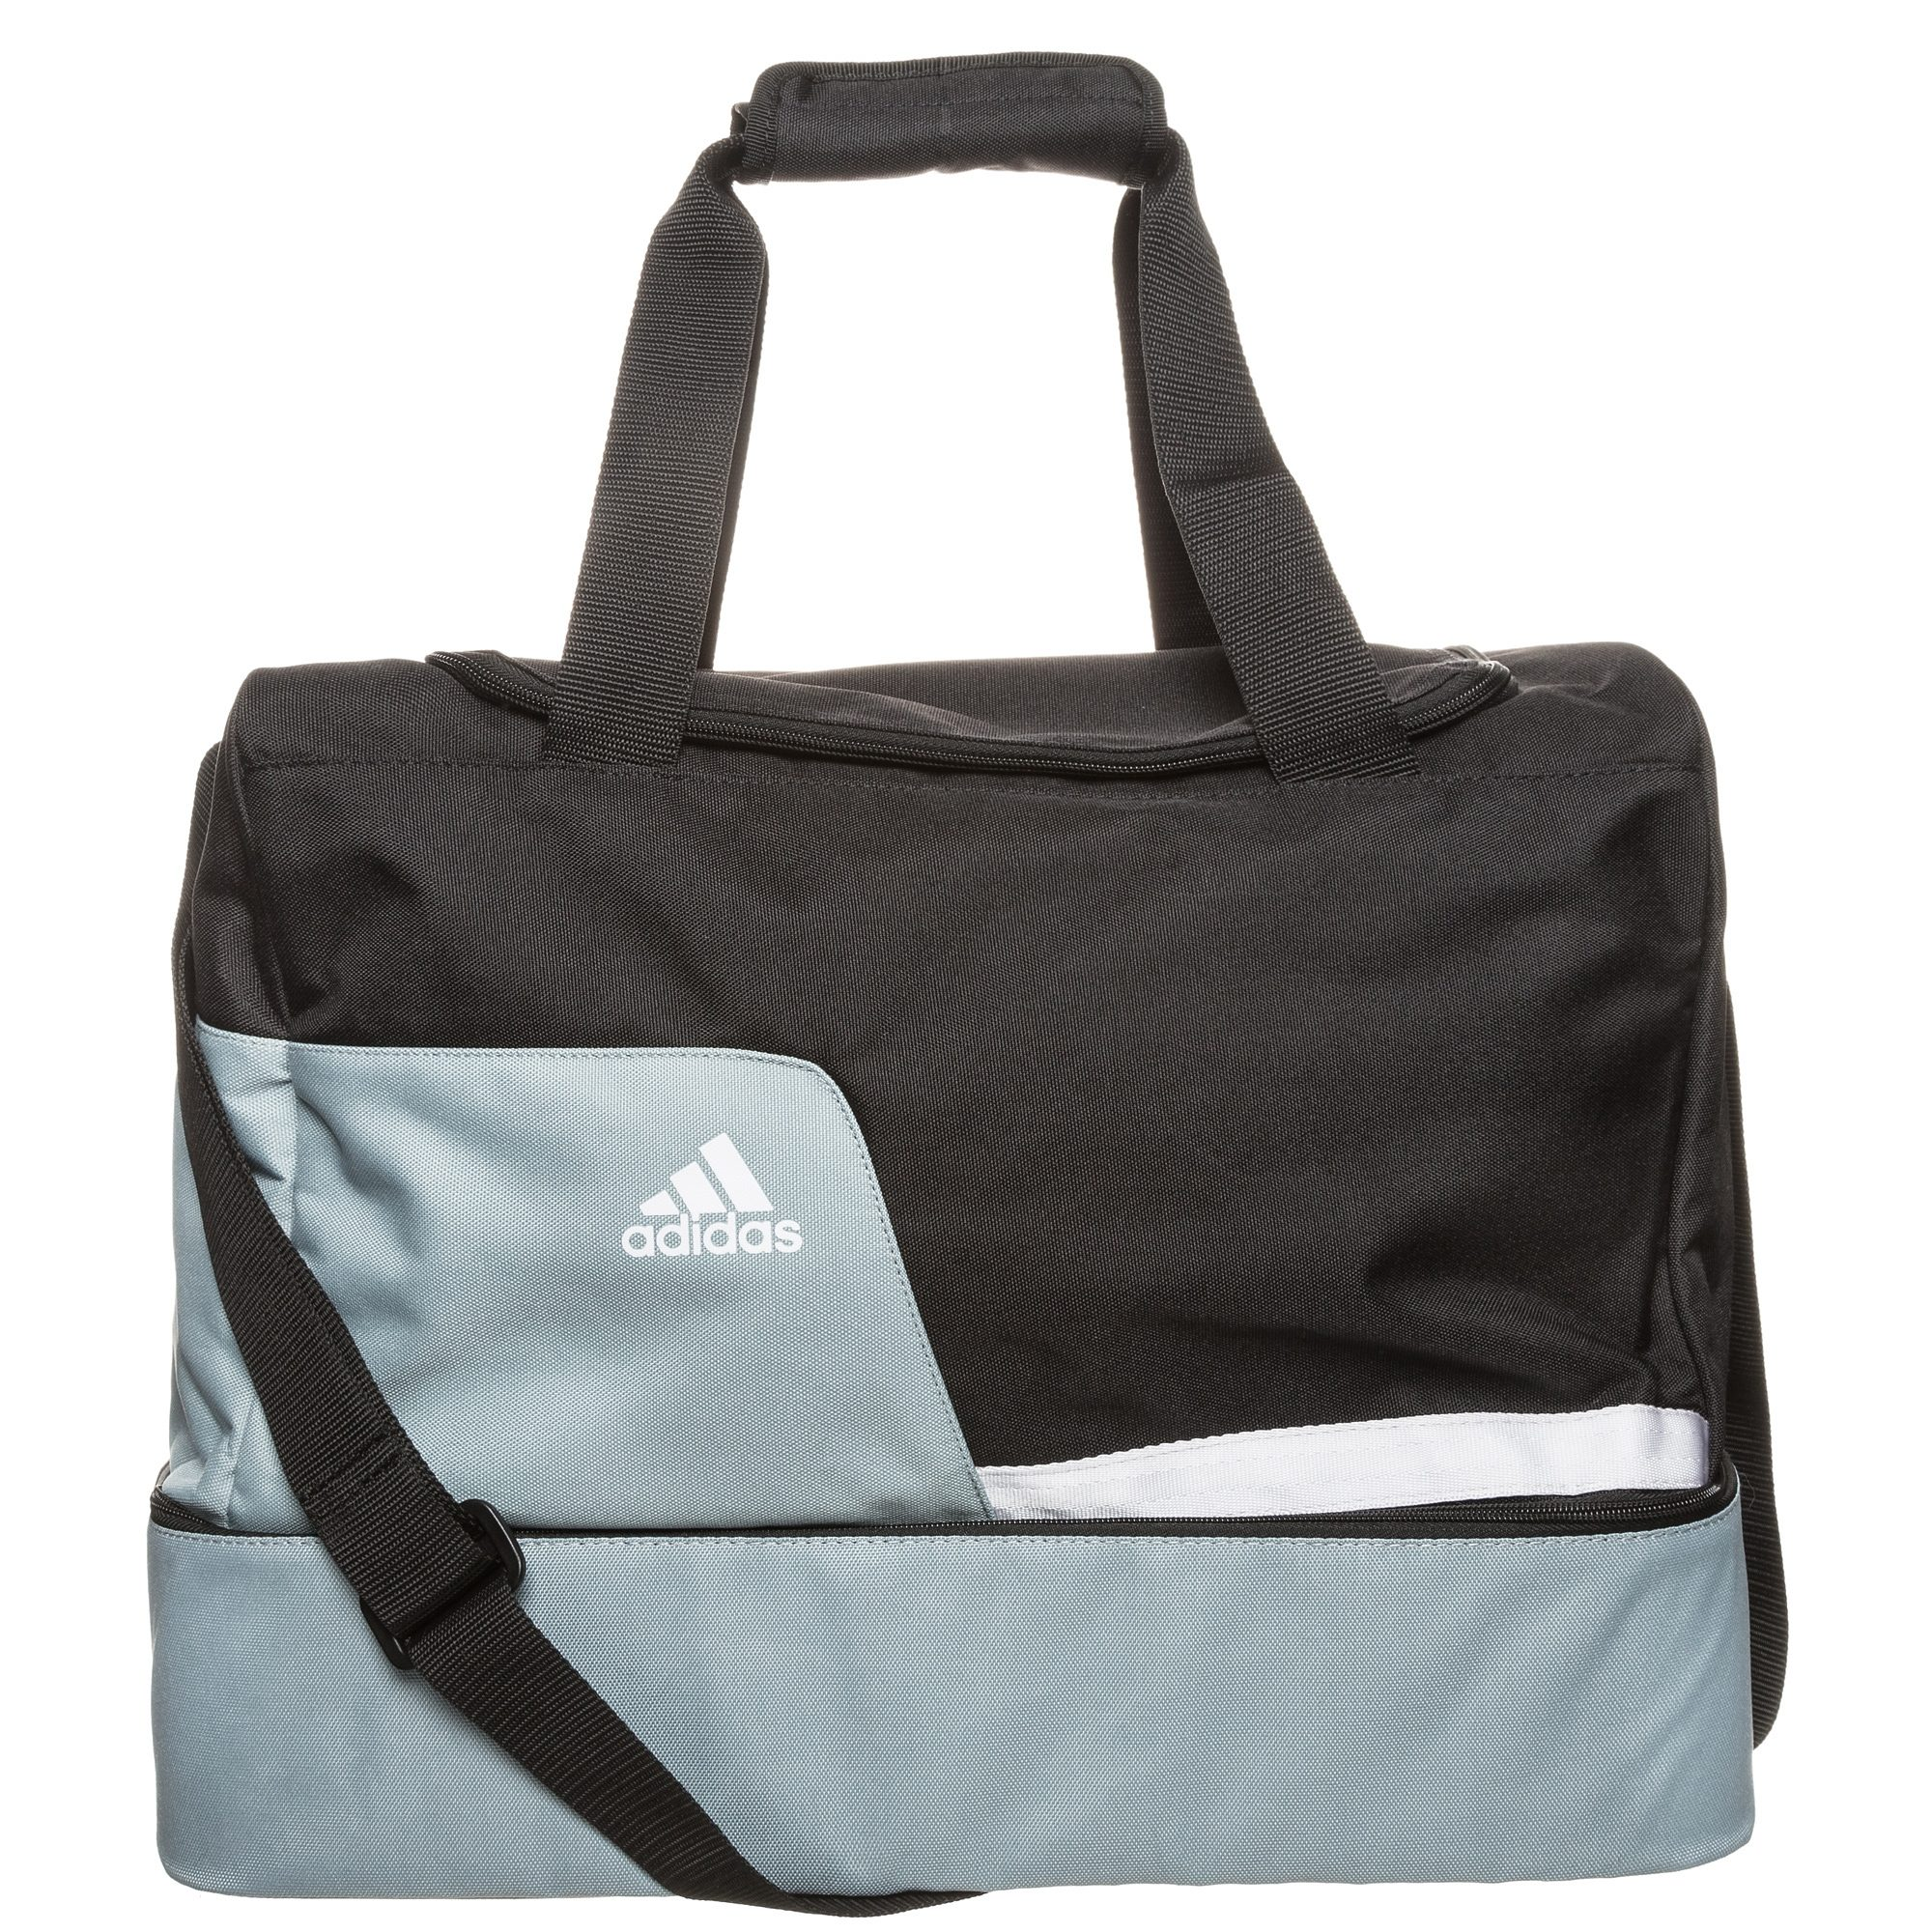 adidas Performance Tiro Team Bag Bottom Compartment S Fußballtasche